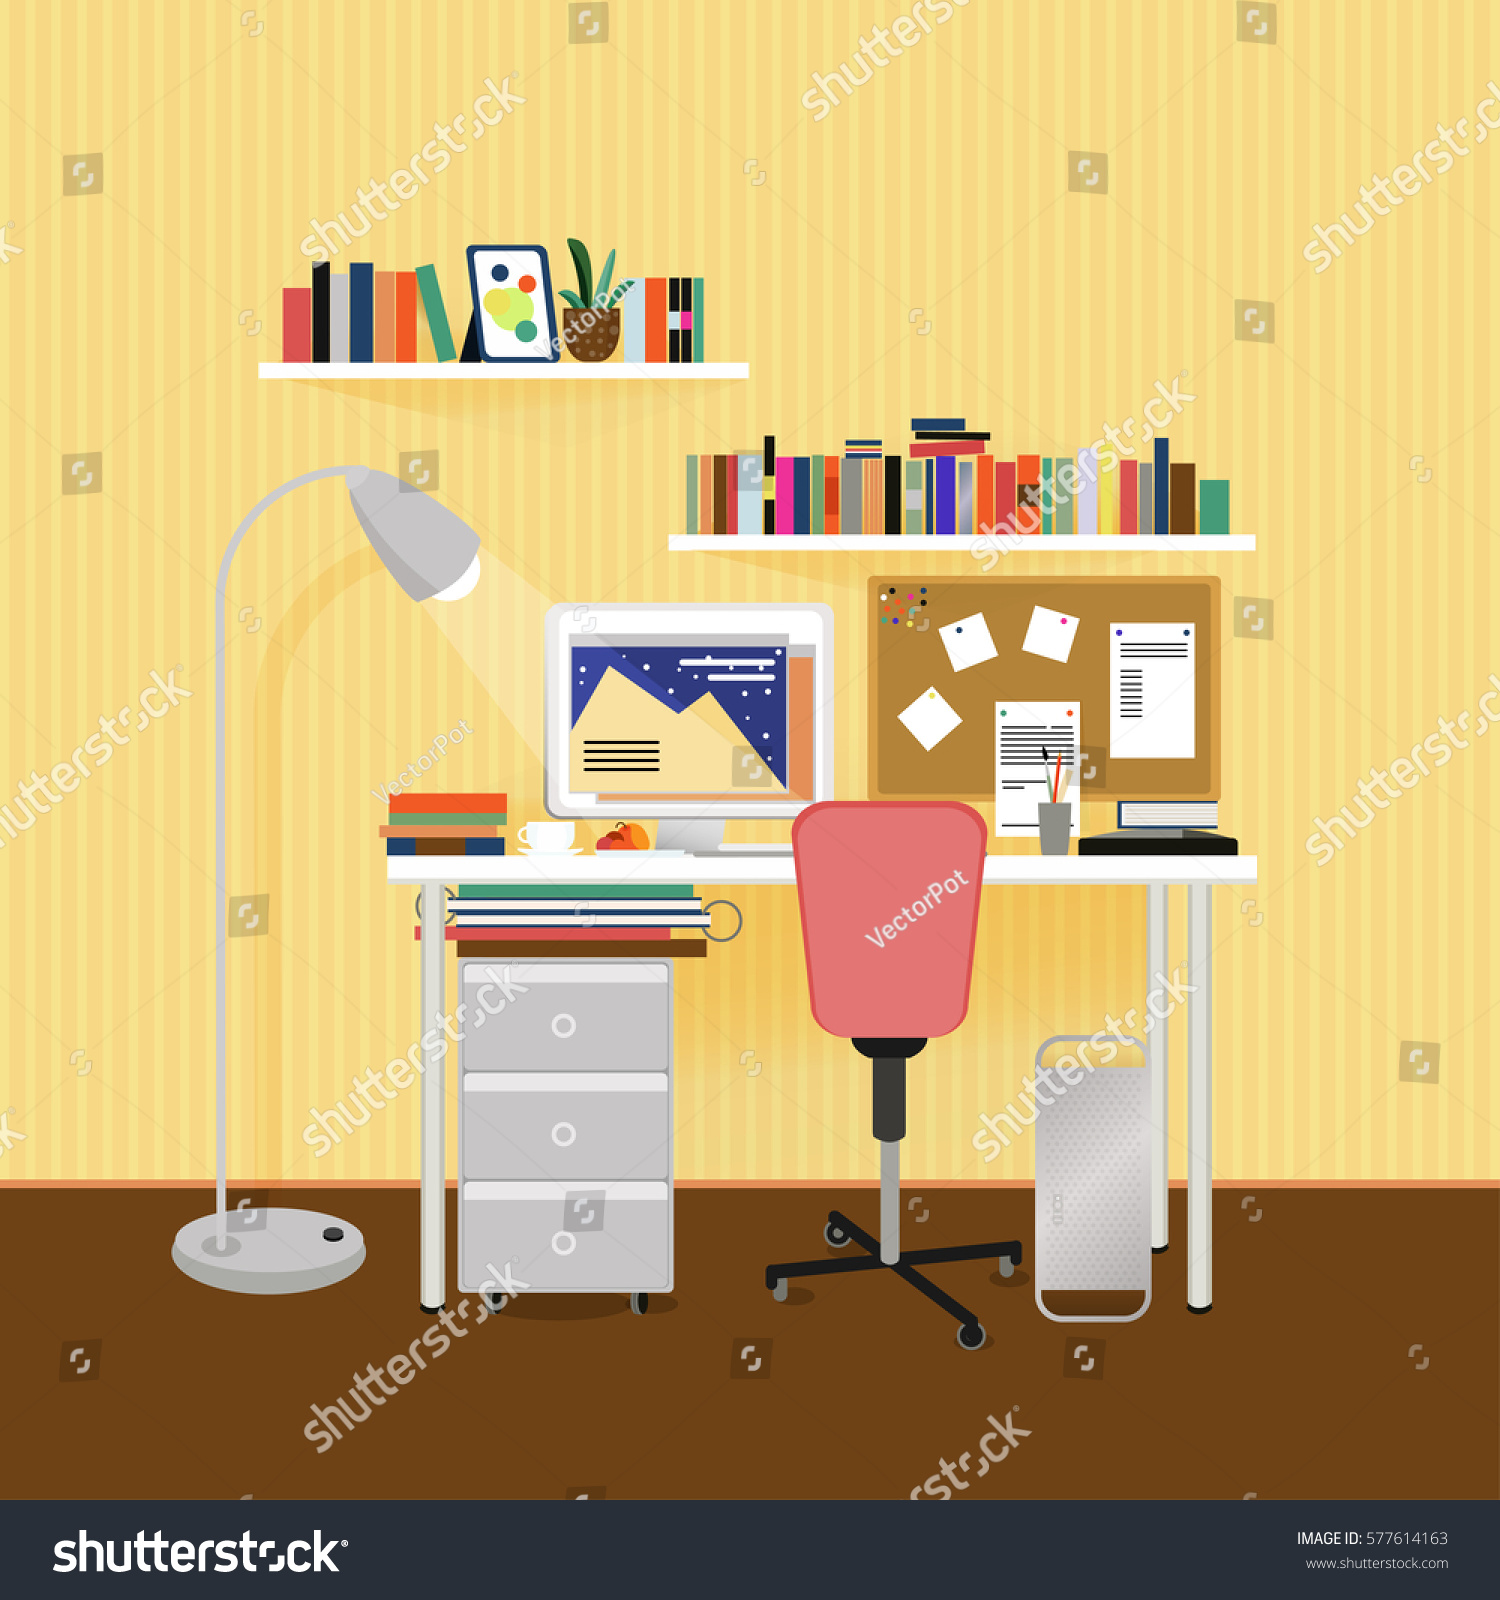 Flat Designer Workplace Concept With Furniture Equipment Tools Stationery  And Striped Light Wallpaper Vector Illustration